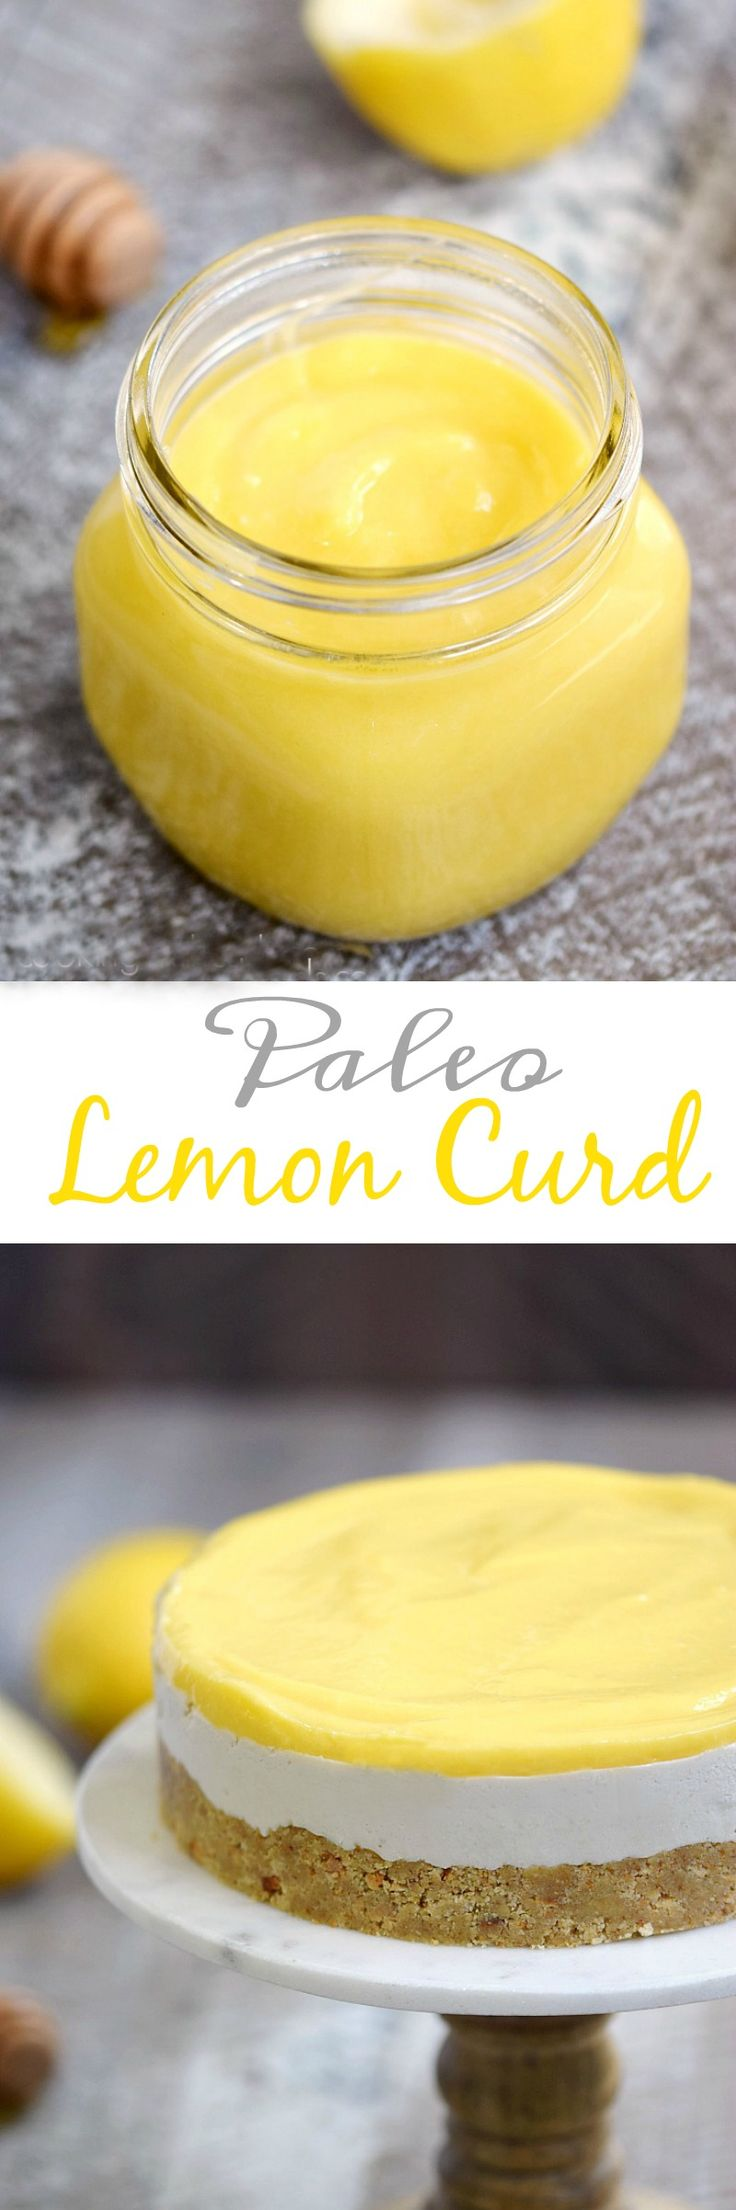 Brighten up your mornings and desserts with this rich and creamy Paleo Lemon Curd. It is refined sugar and dairy-free, so you can skip the guilt! cookingwithcurls.com